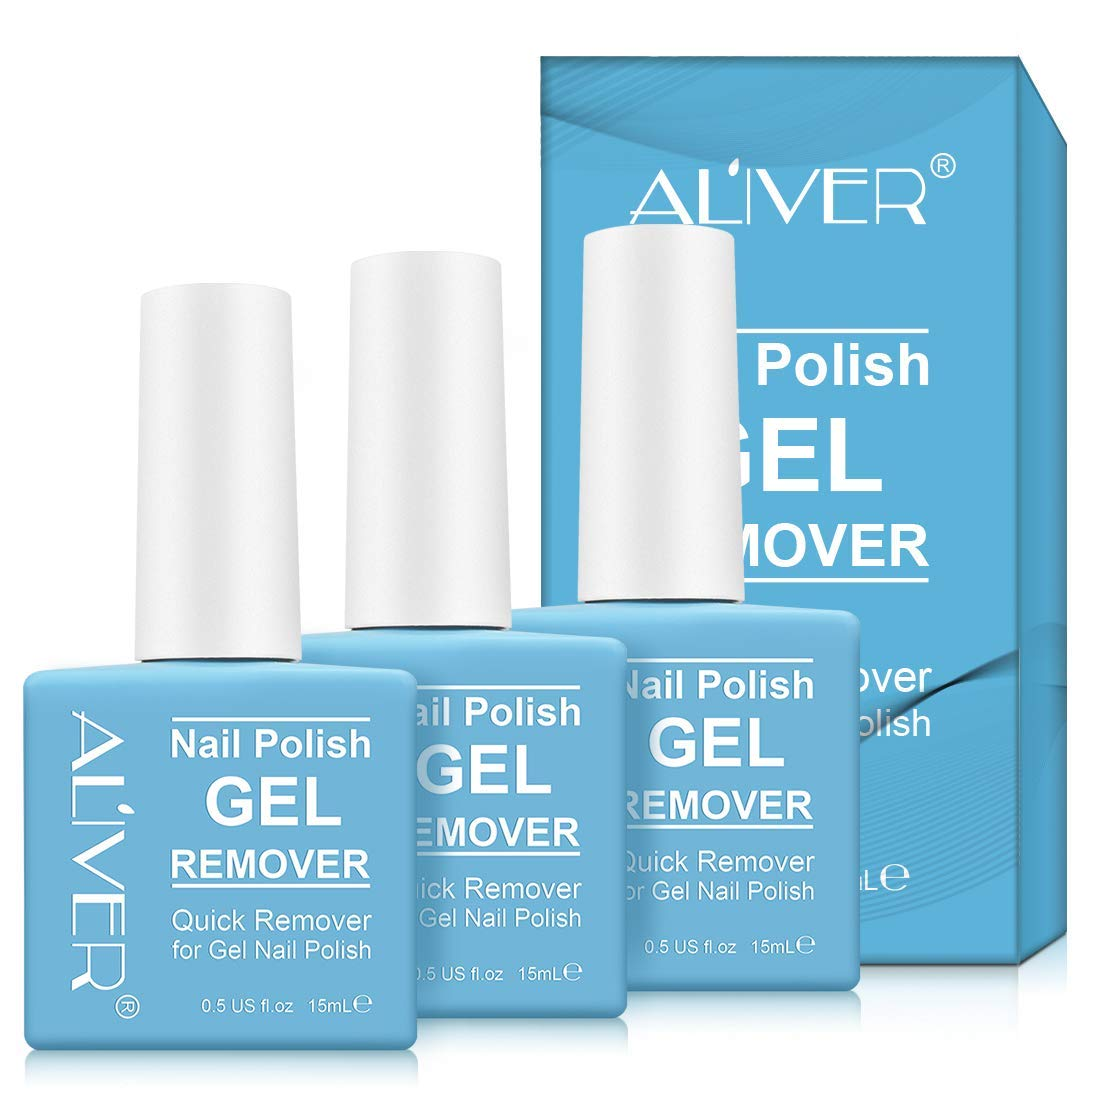 Magic Nail Polish Remover 3Pack, Remove Gel Nail Polish in 2-3 Minutes, Simple to Use on Shellec, UV Polish, Nail Extensions without Foil & Clips, Soak off Polish & Wrap away it,Not Hurt Nails,Blue